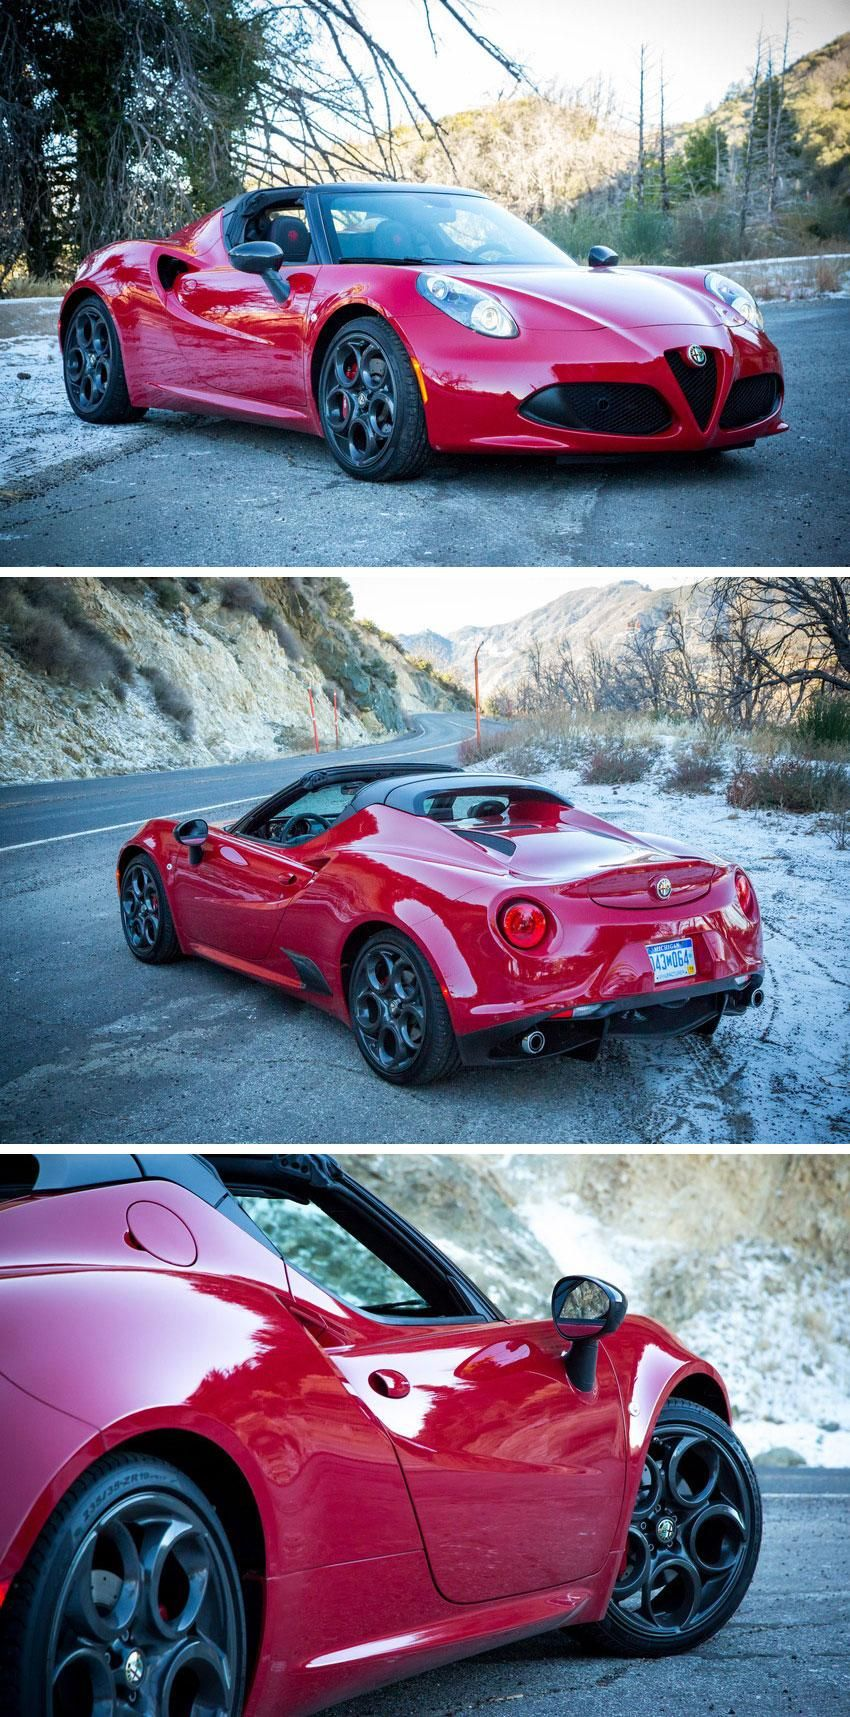 Alpha Romeo S 4c Spider Is A Brutal Sports Car Only A Lunatic Could Love Review Expensive Sports Cars Cool Sports Cars Alfa Romeo 4c